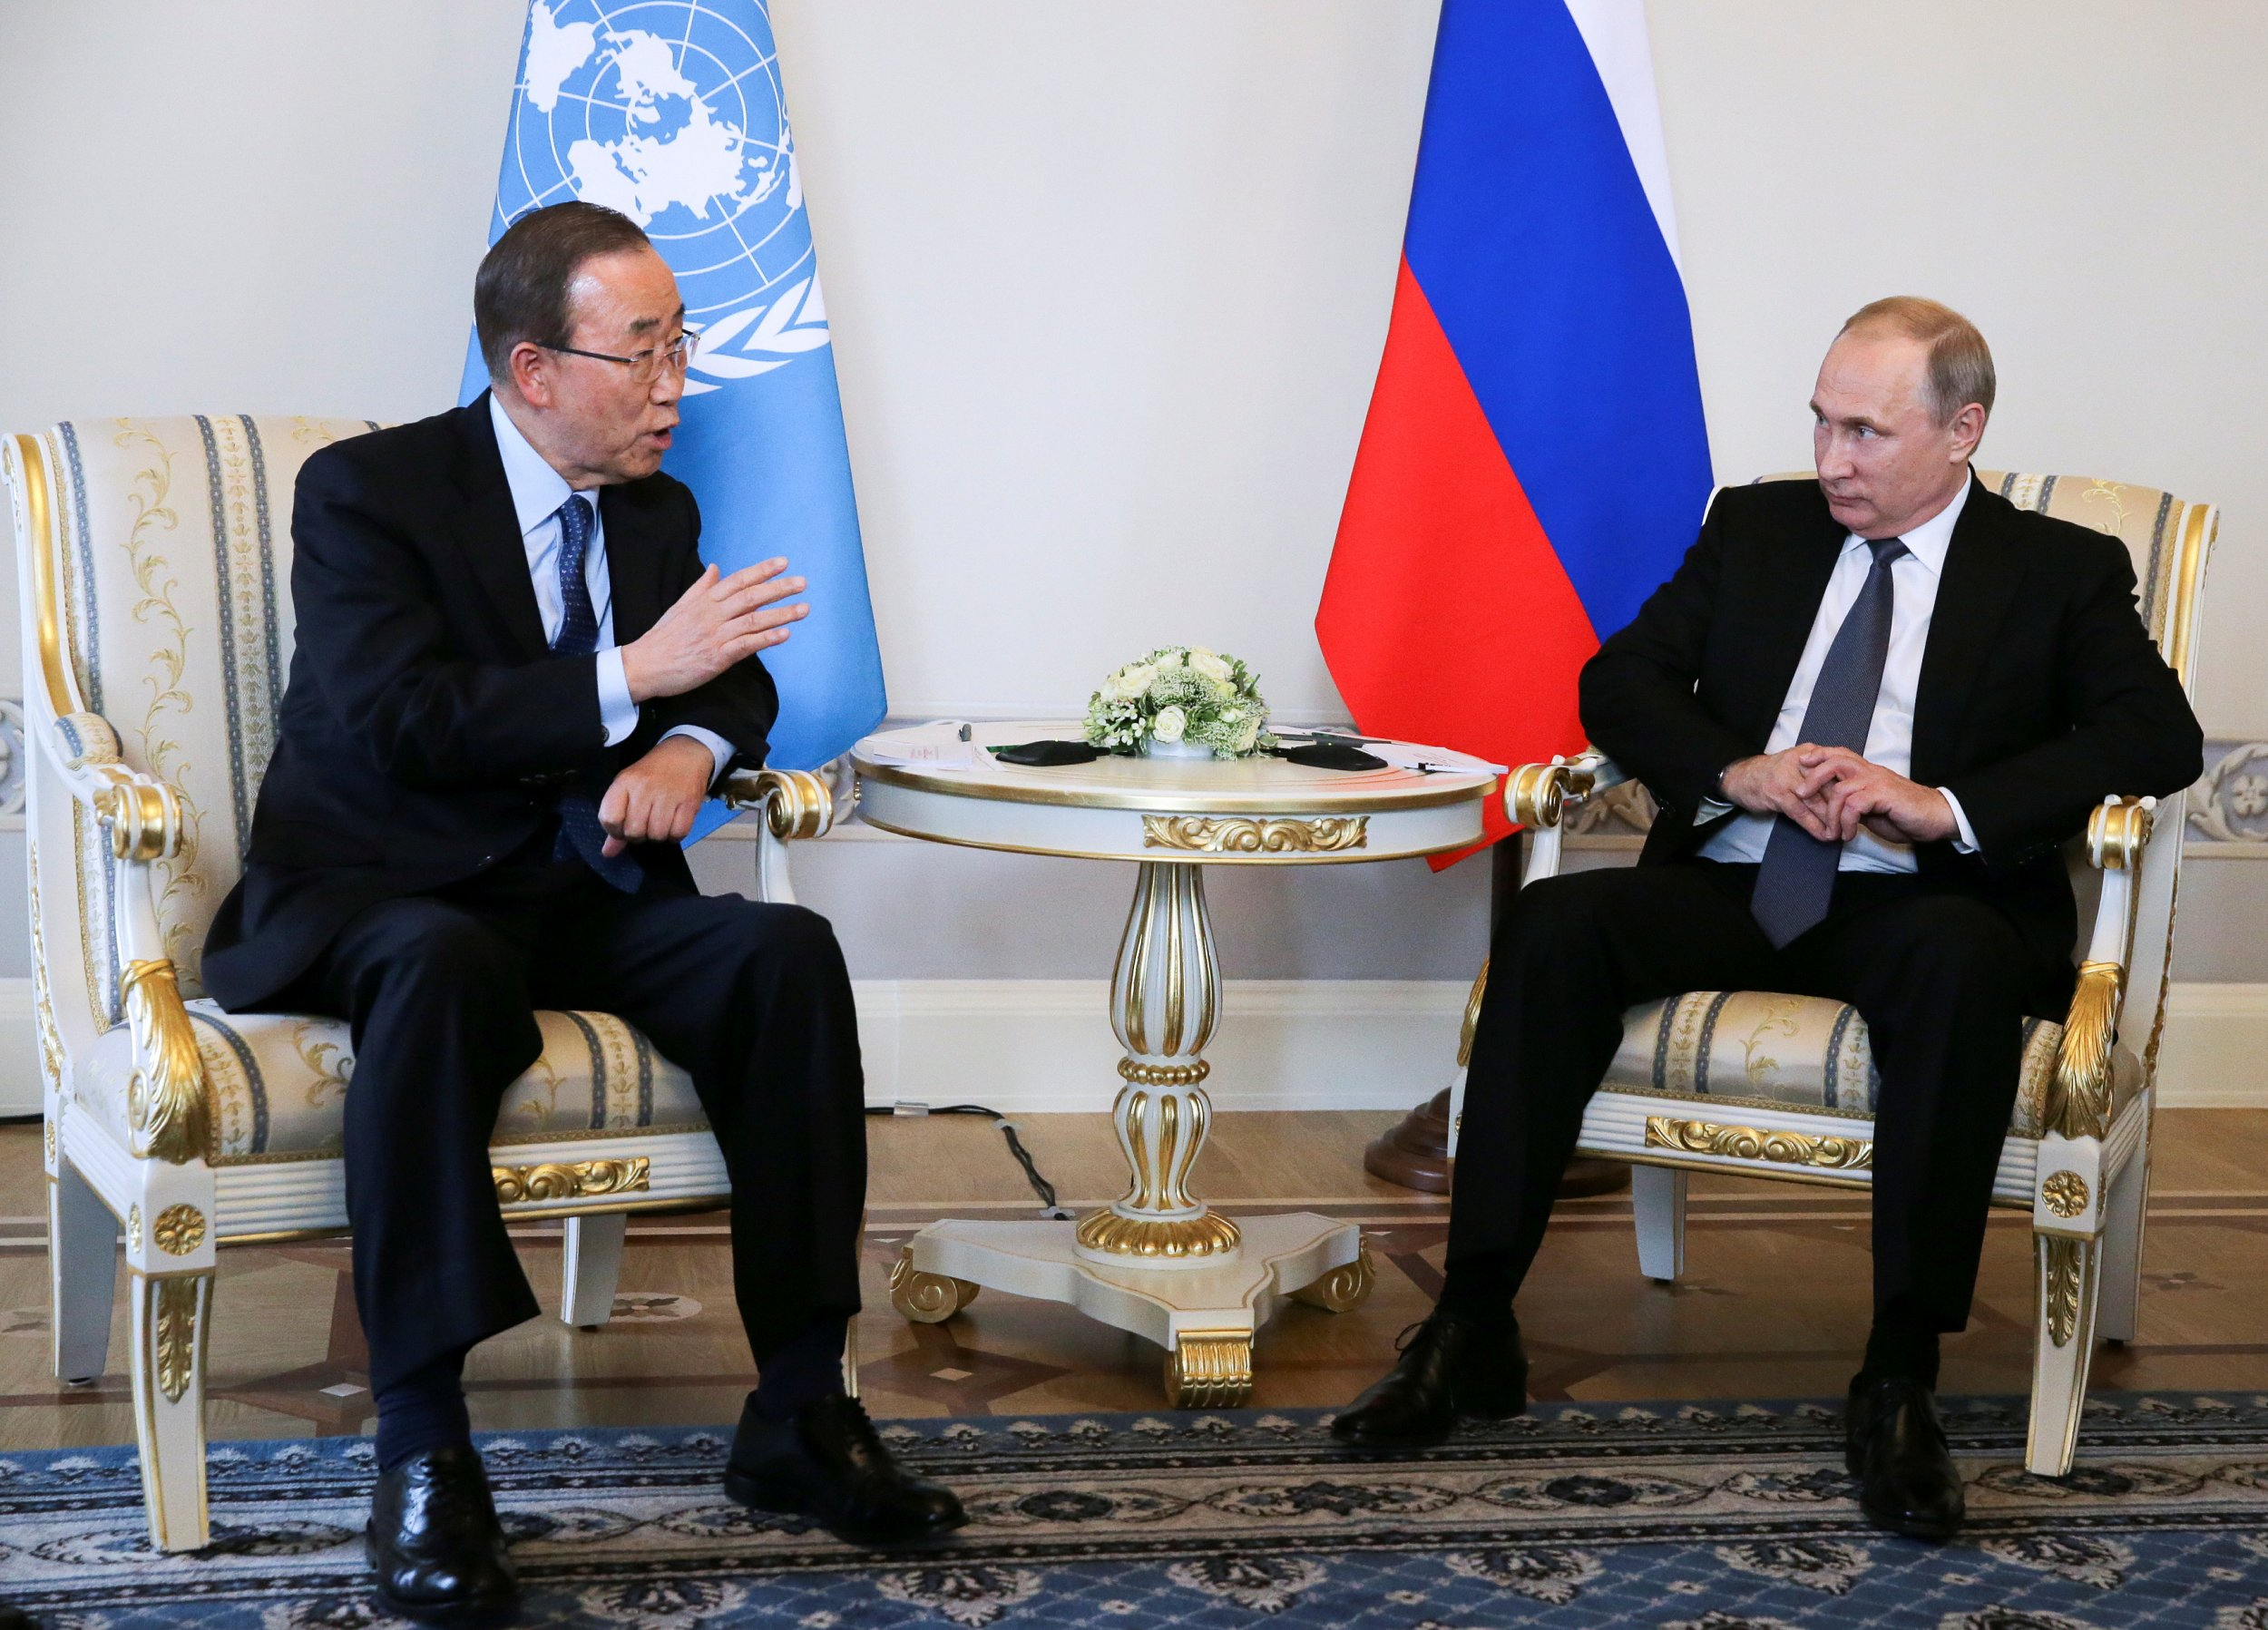 Vladimir Putin and Ban Ki-moon